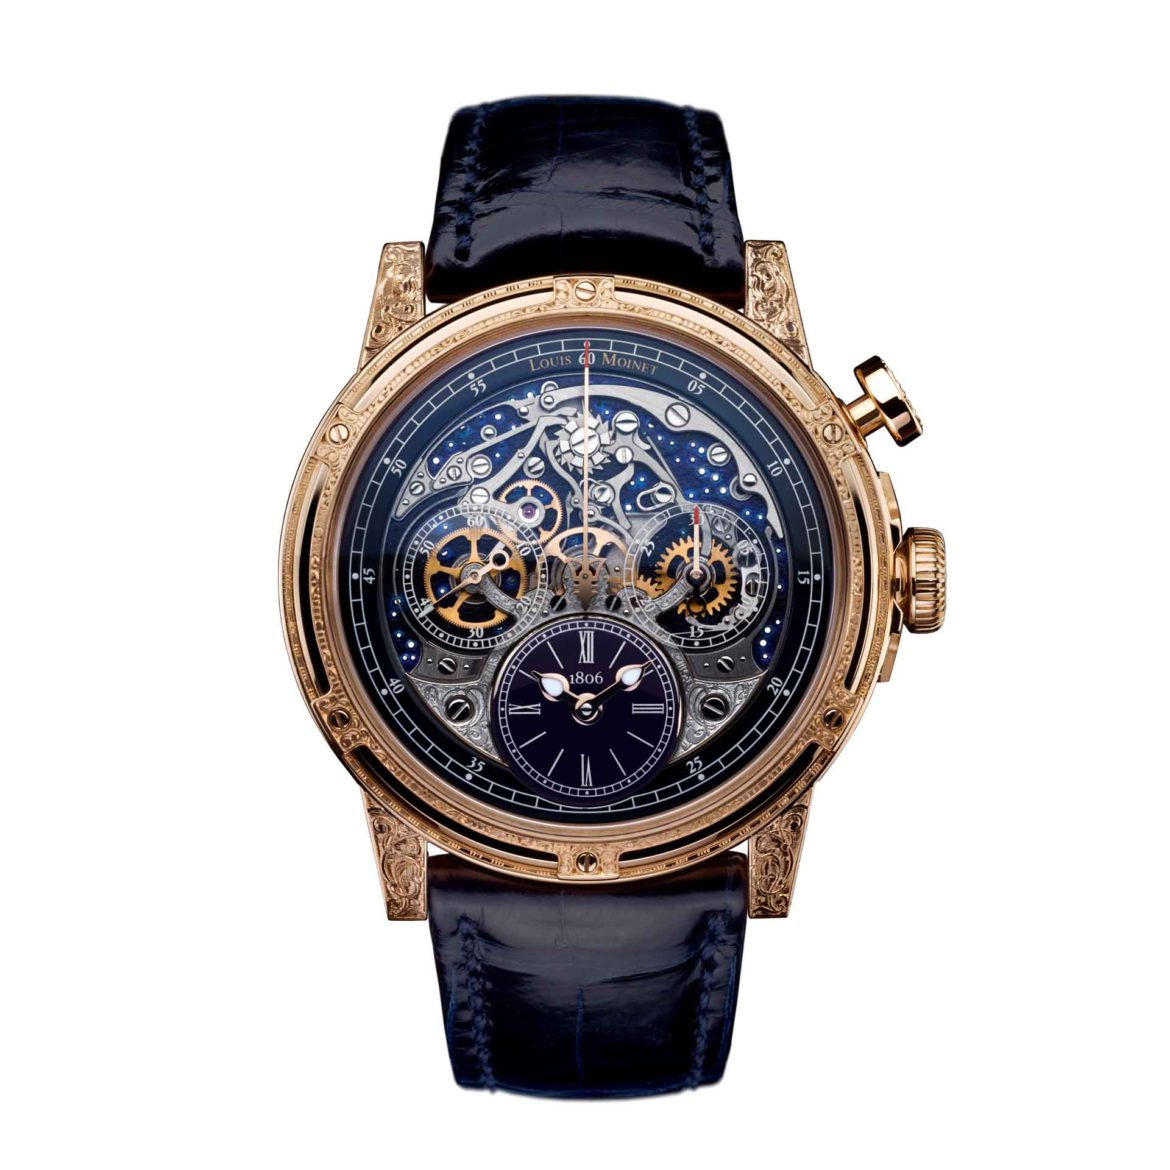 Louis Moinet Memoris Red Eclipse LM-54.51.21